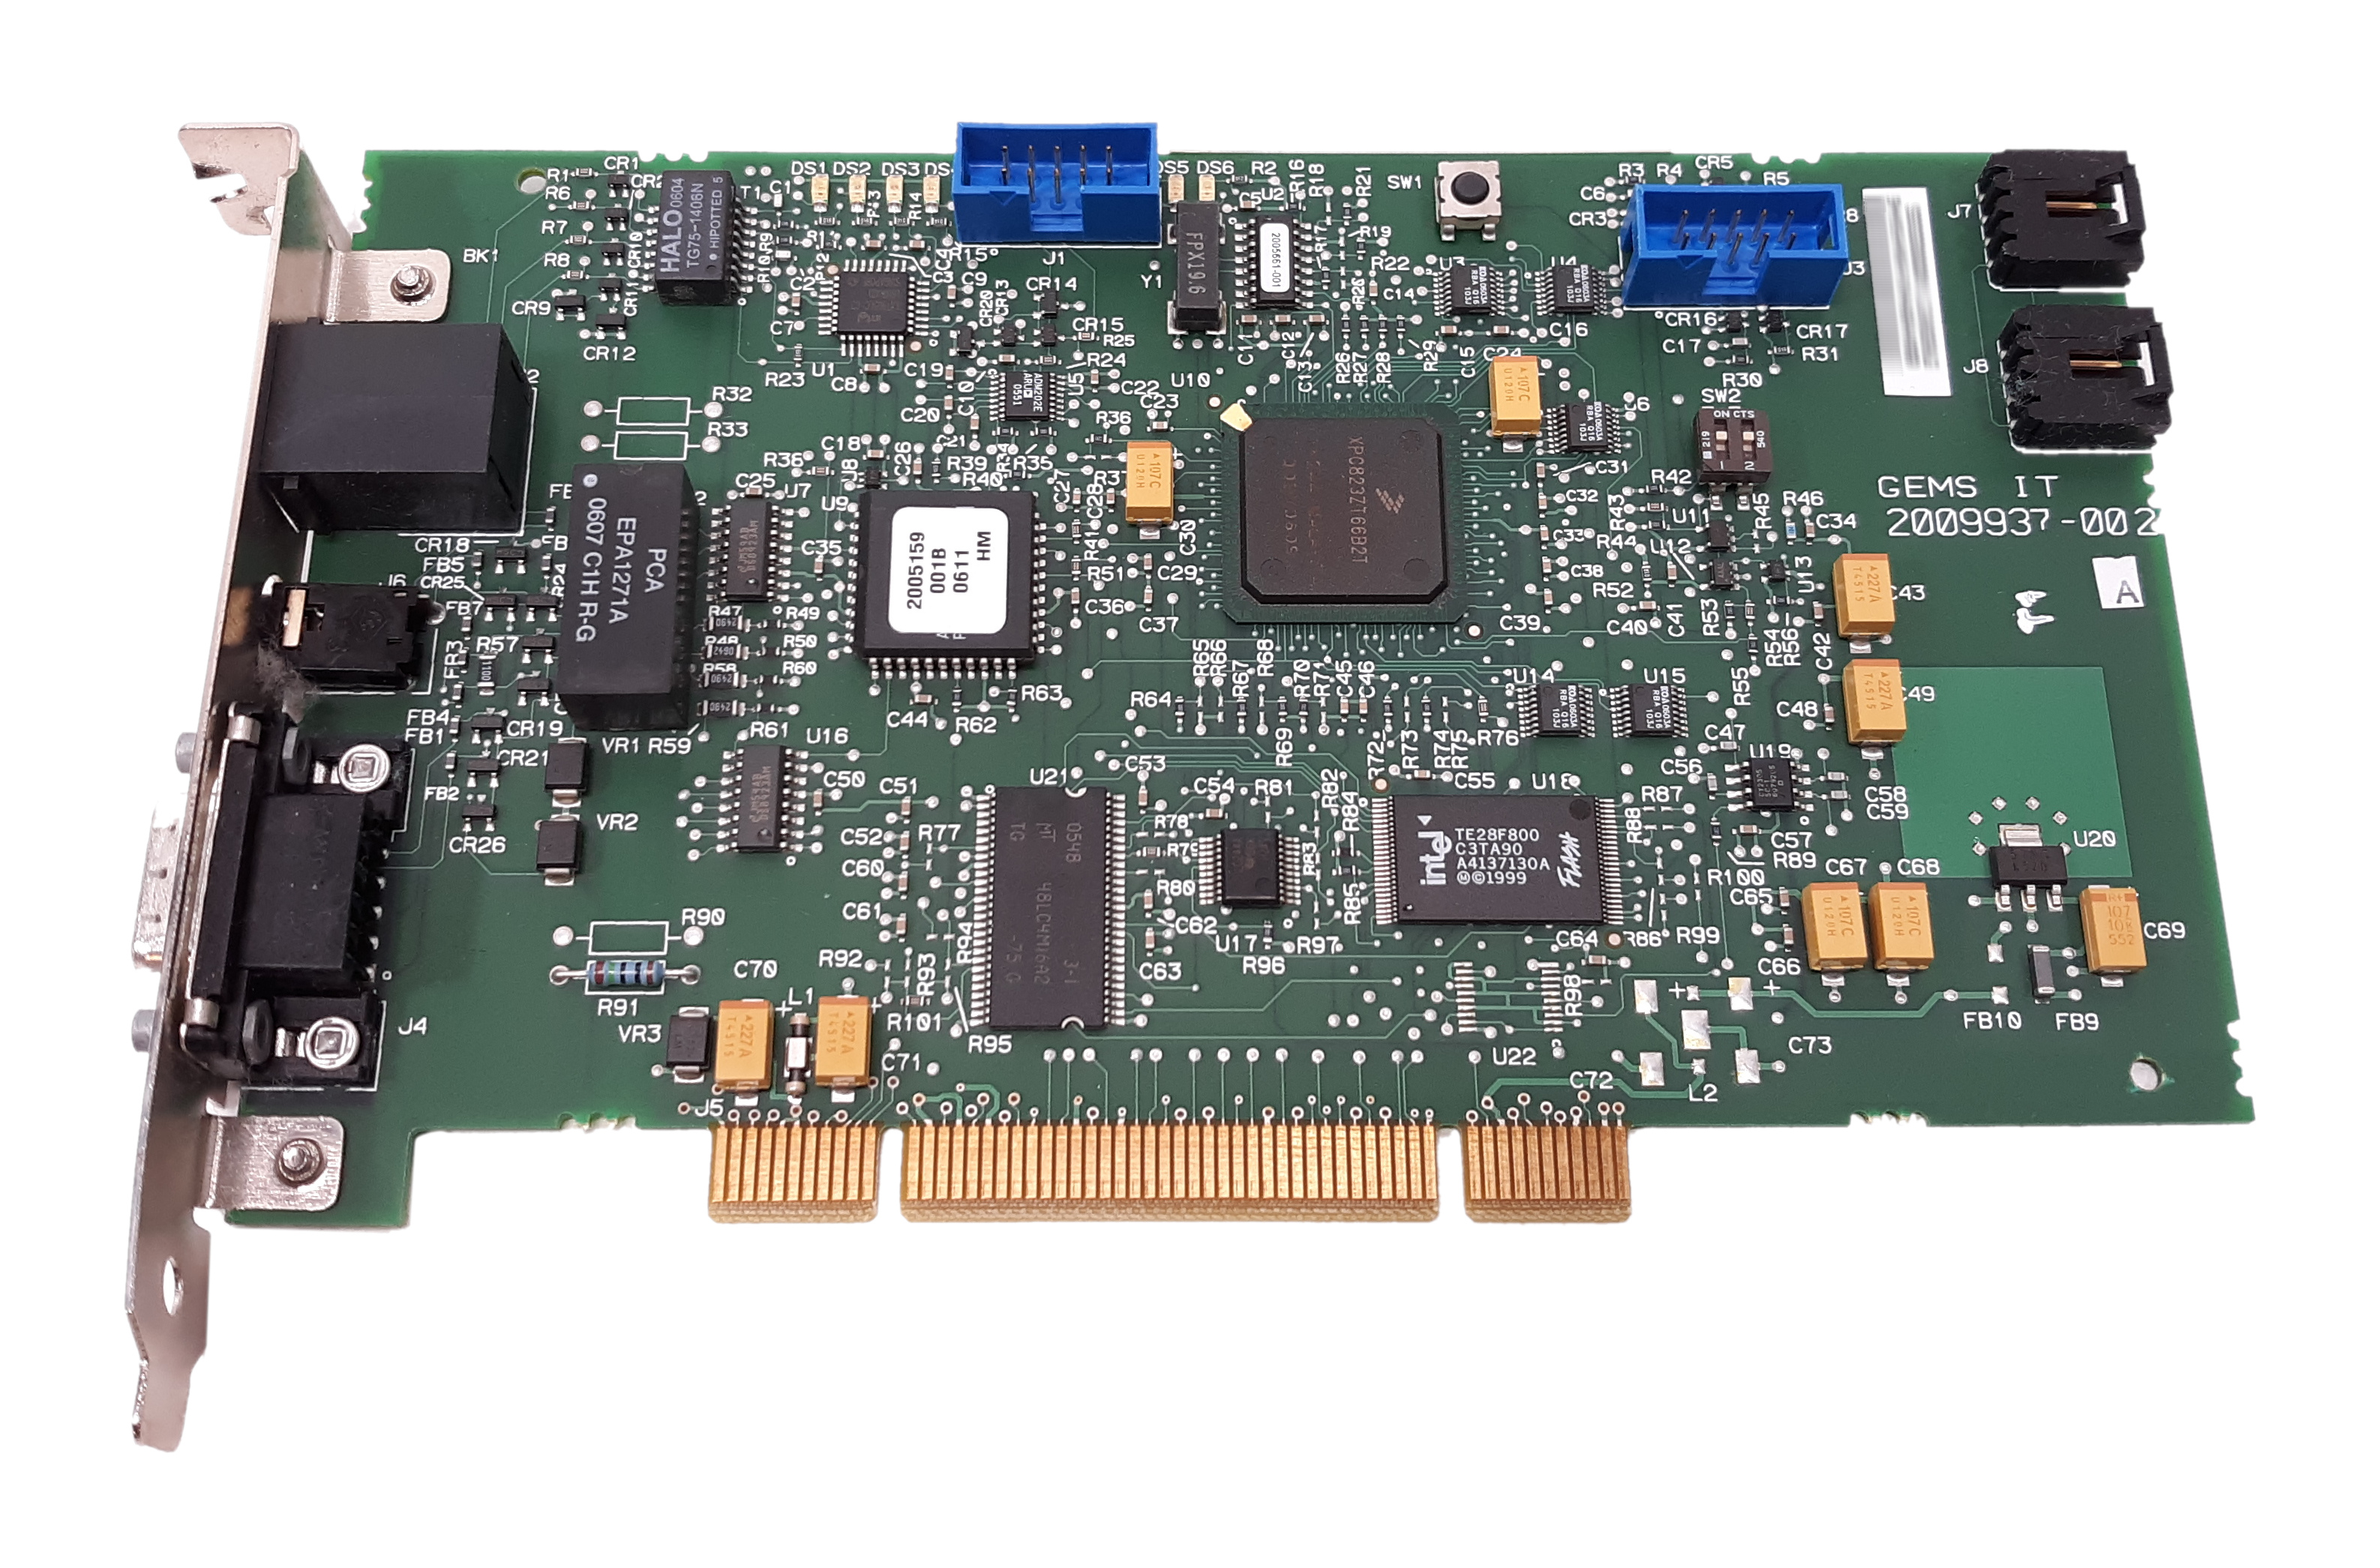 Intel GEMS IT Rev. A Ethernet Interface Card PCI GE Medical cardio Lab 2009937-002 2009936-002